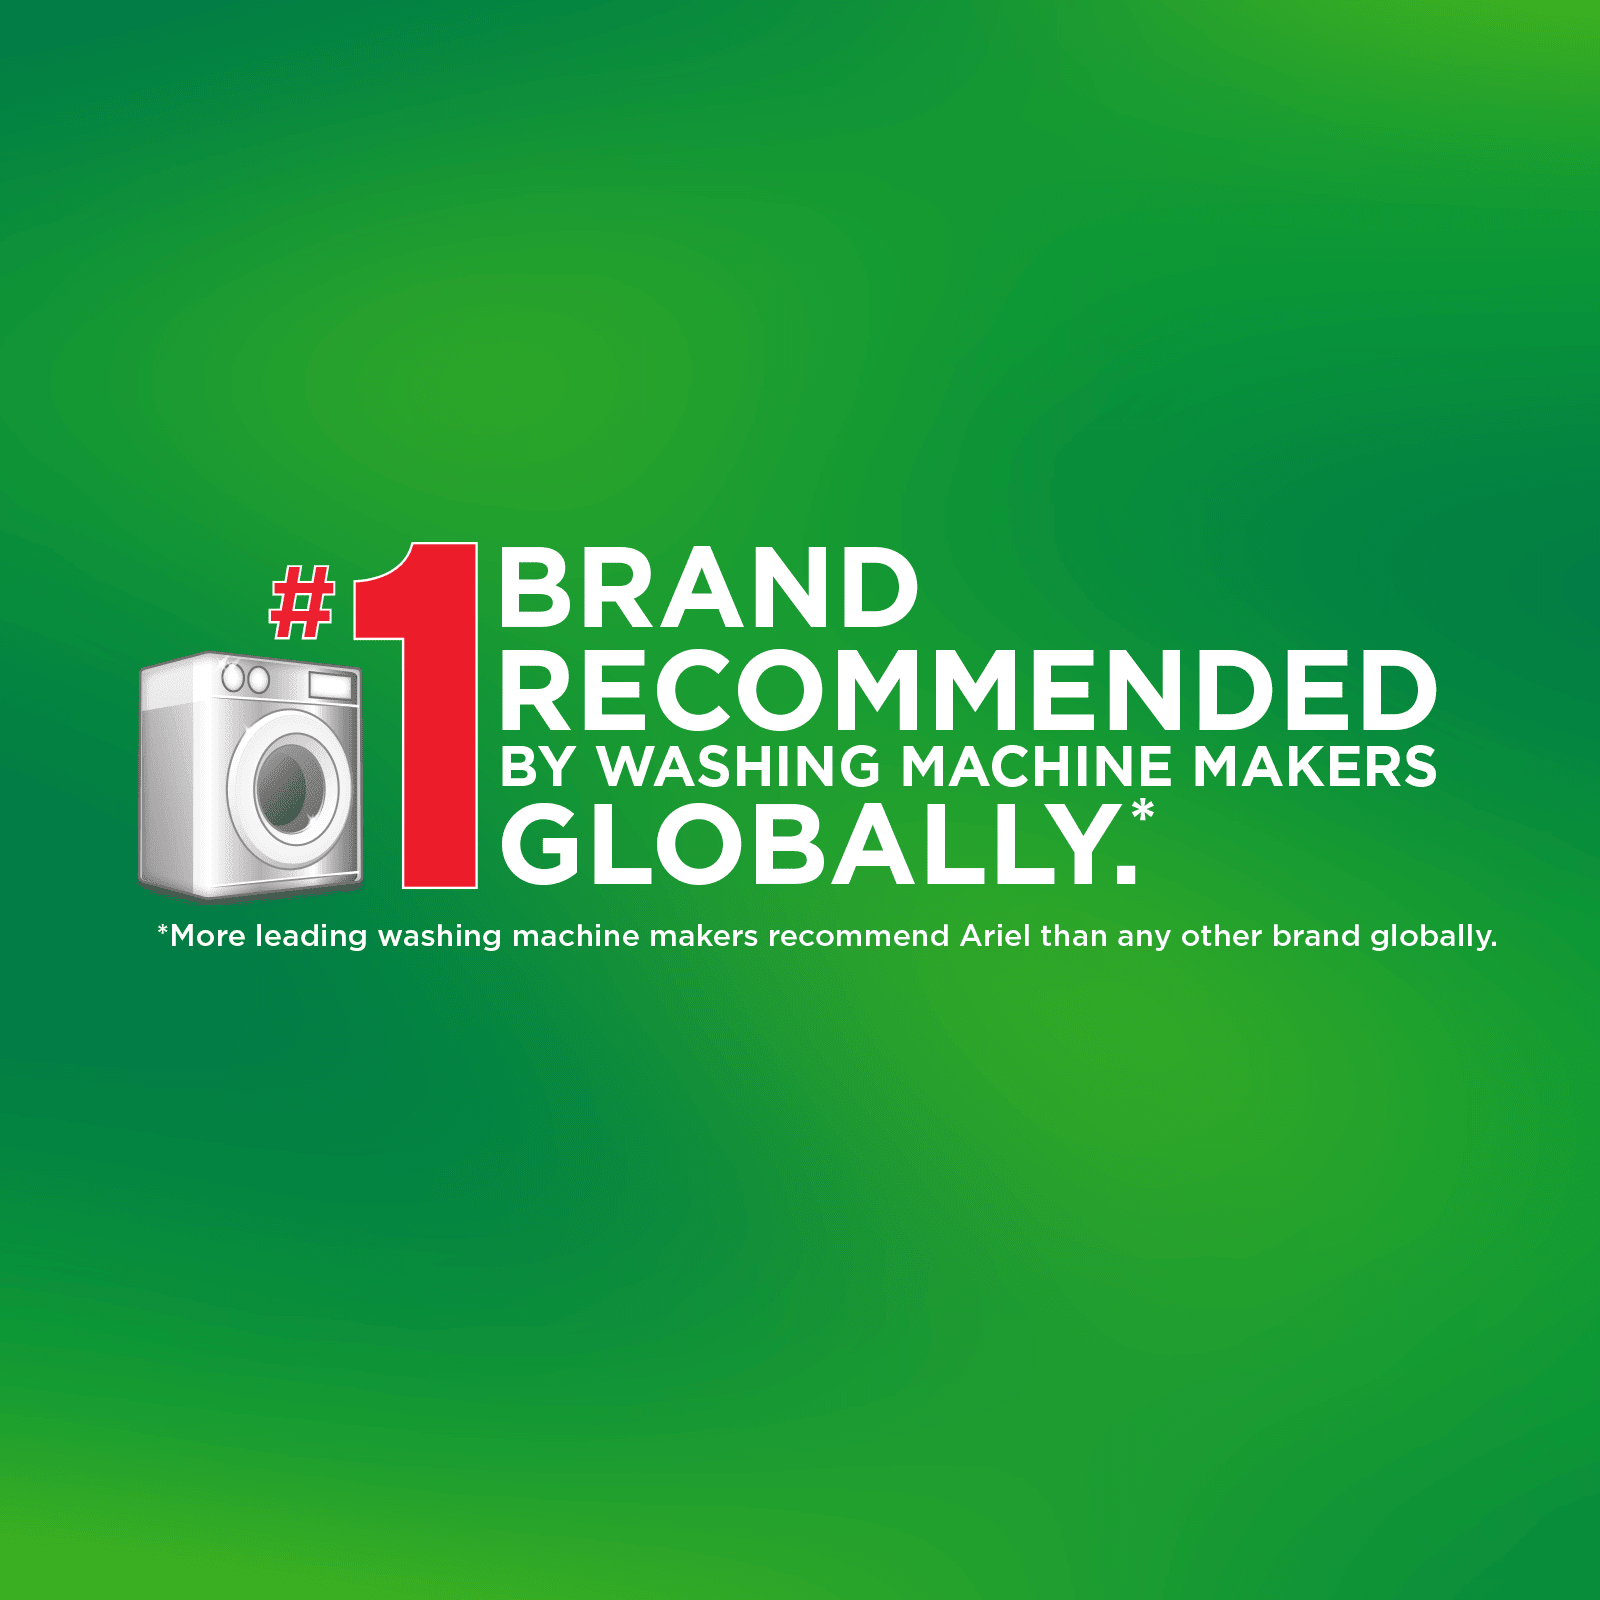 Number one brand recommended by washing machine manufacturers globally.